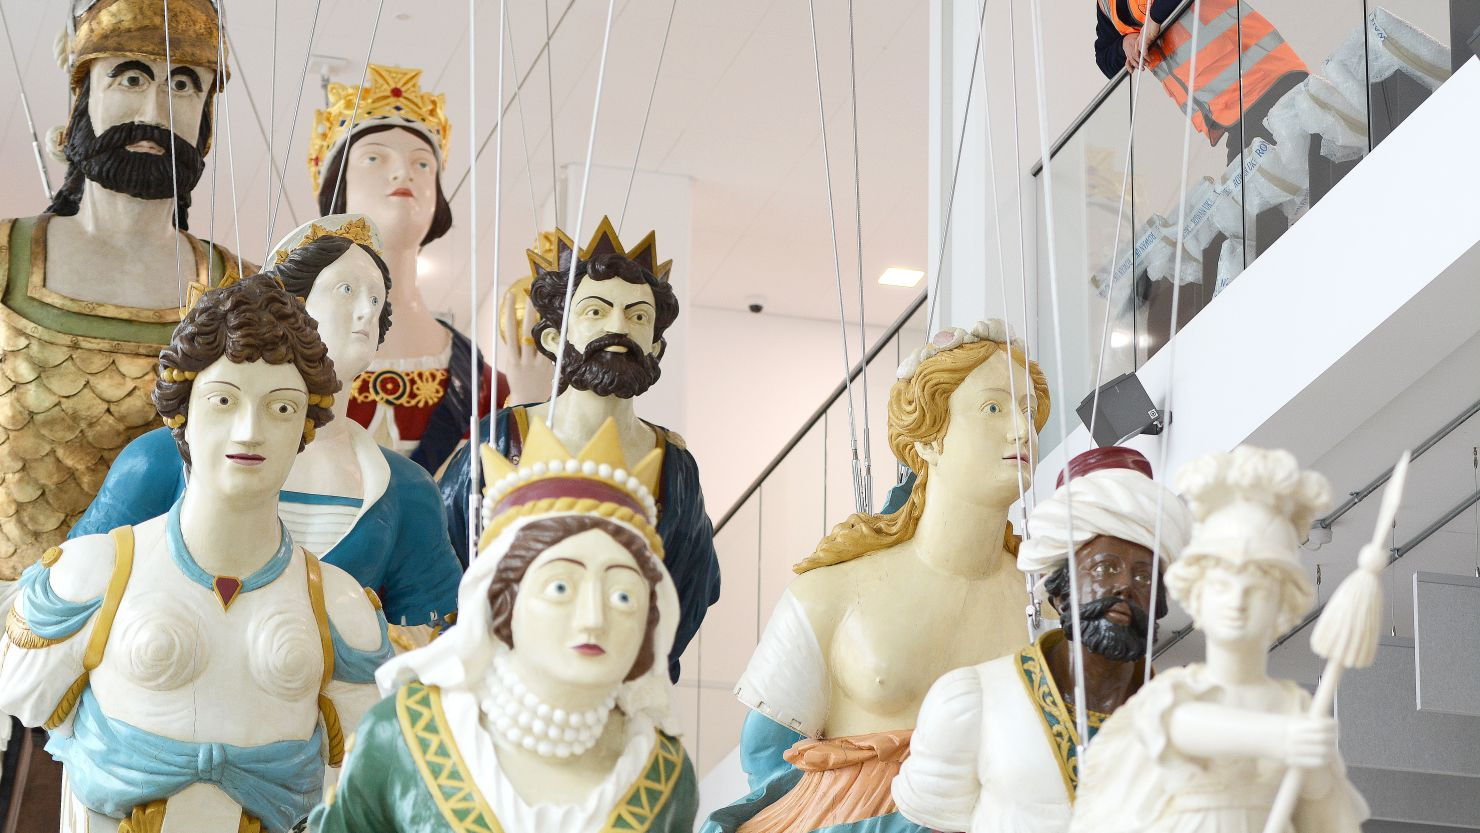 A group of Royal Naval ship's figureheads at The Box